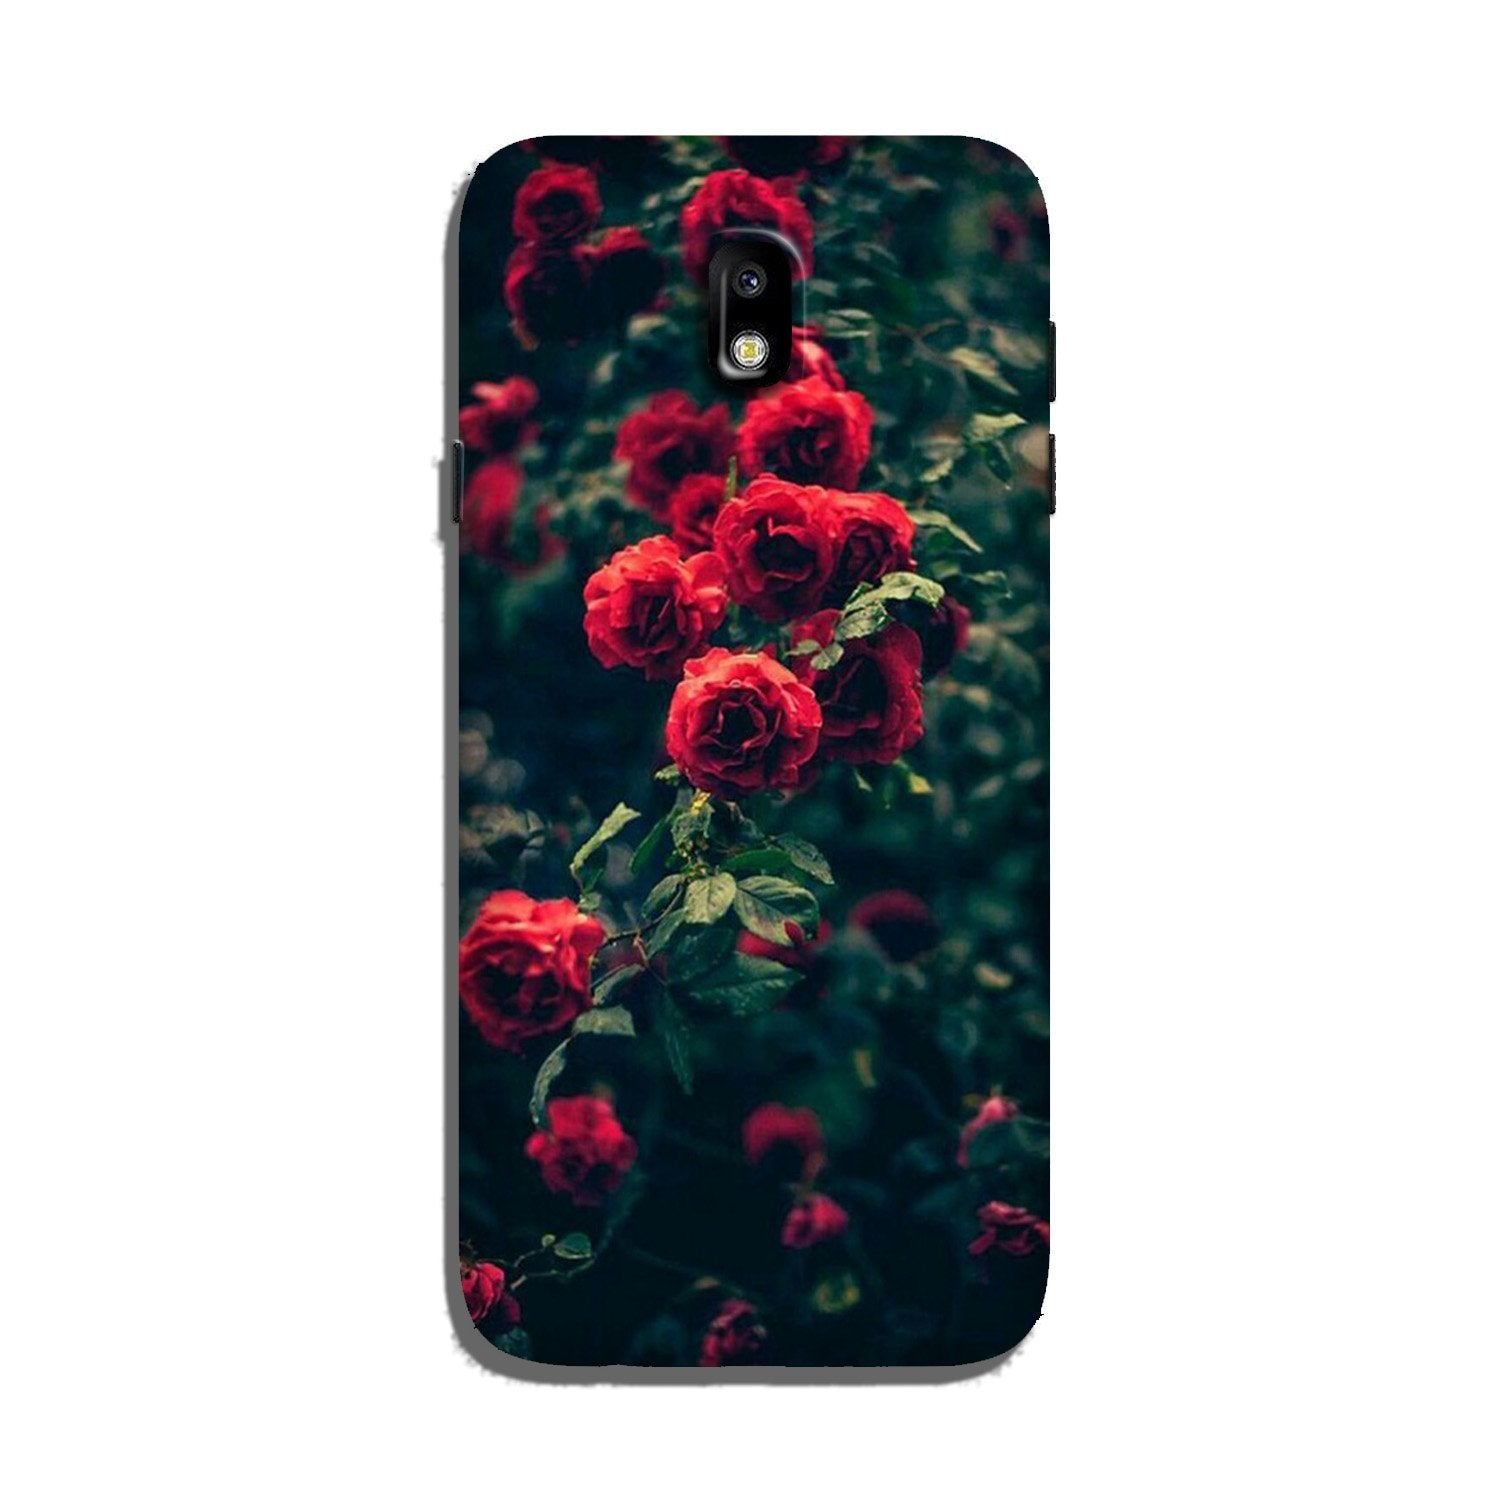 Red Rose Case for Galaxy J7 Pro